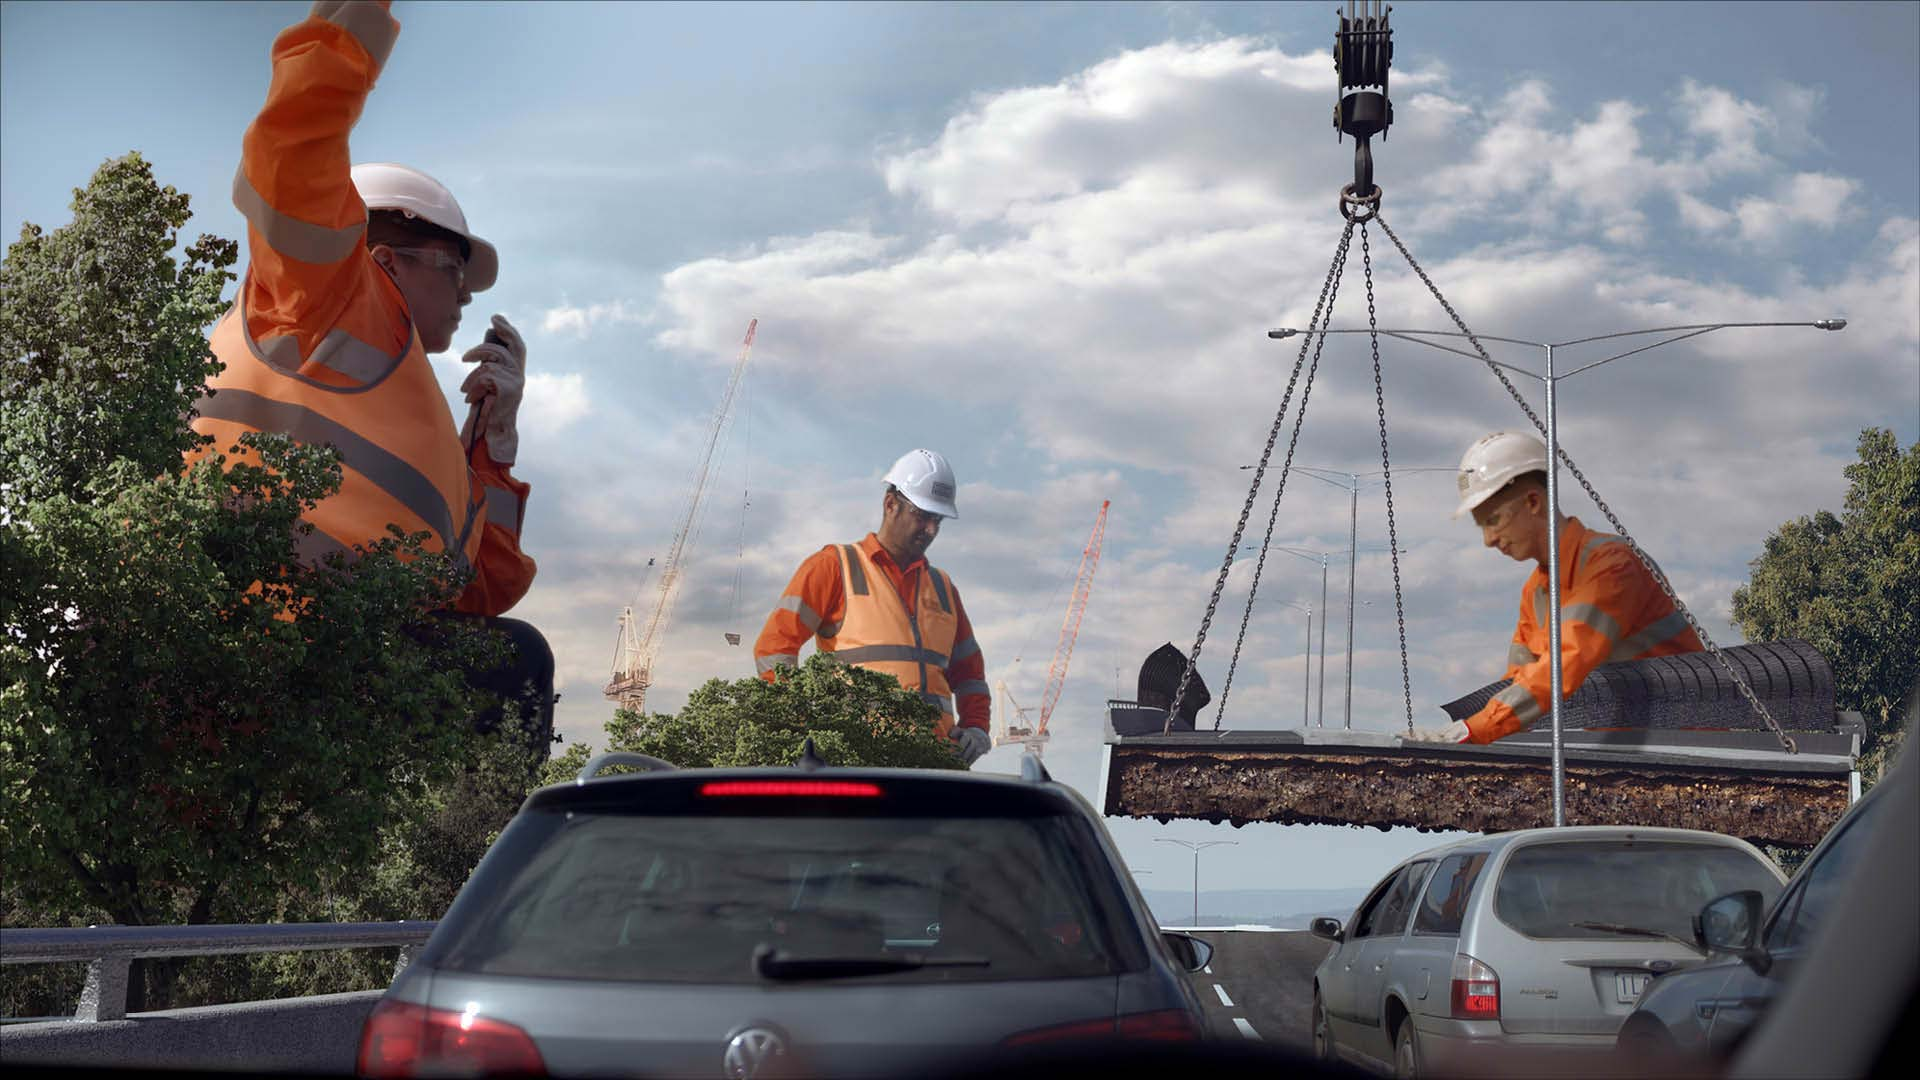 Three giant workers in hi-viz clothes and hard-hats supervise a section of road being lowered into place by a crane. Several cars wait in the foreground.